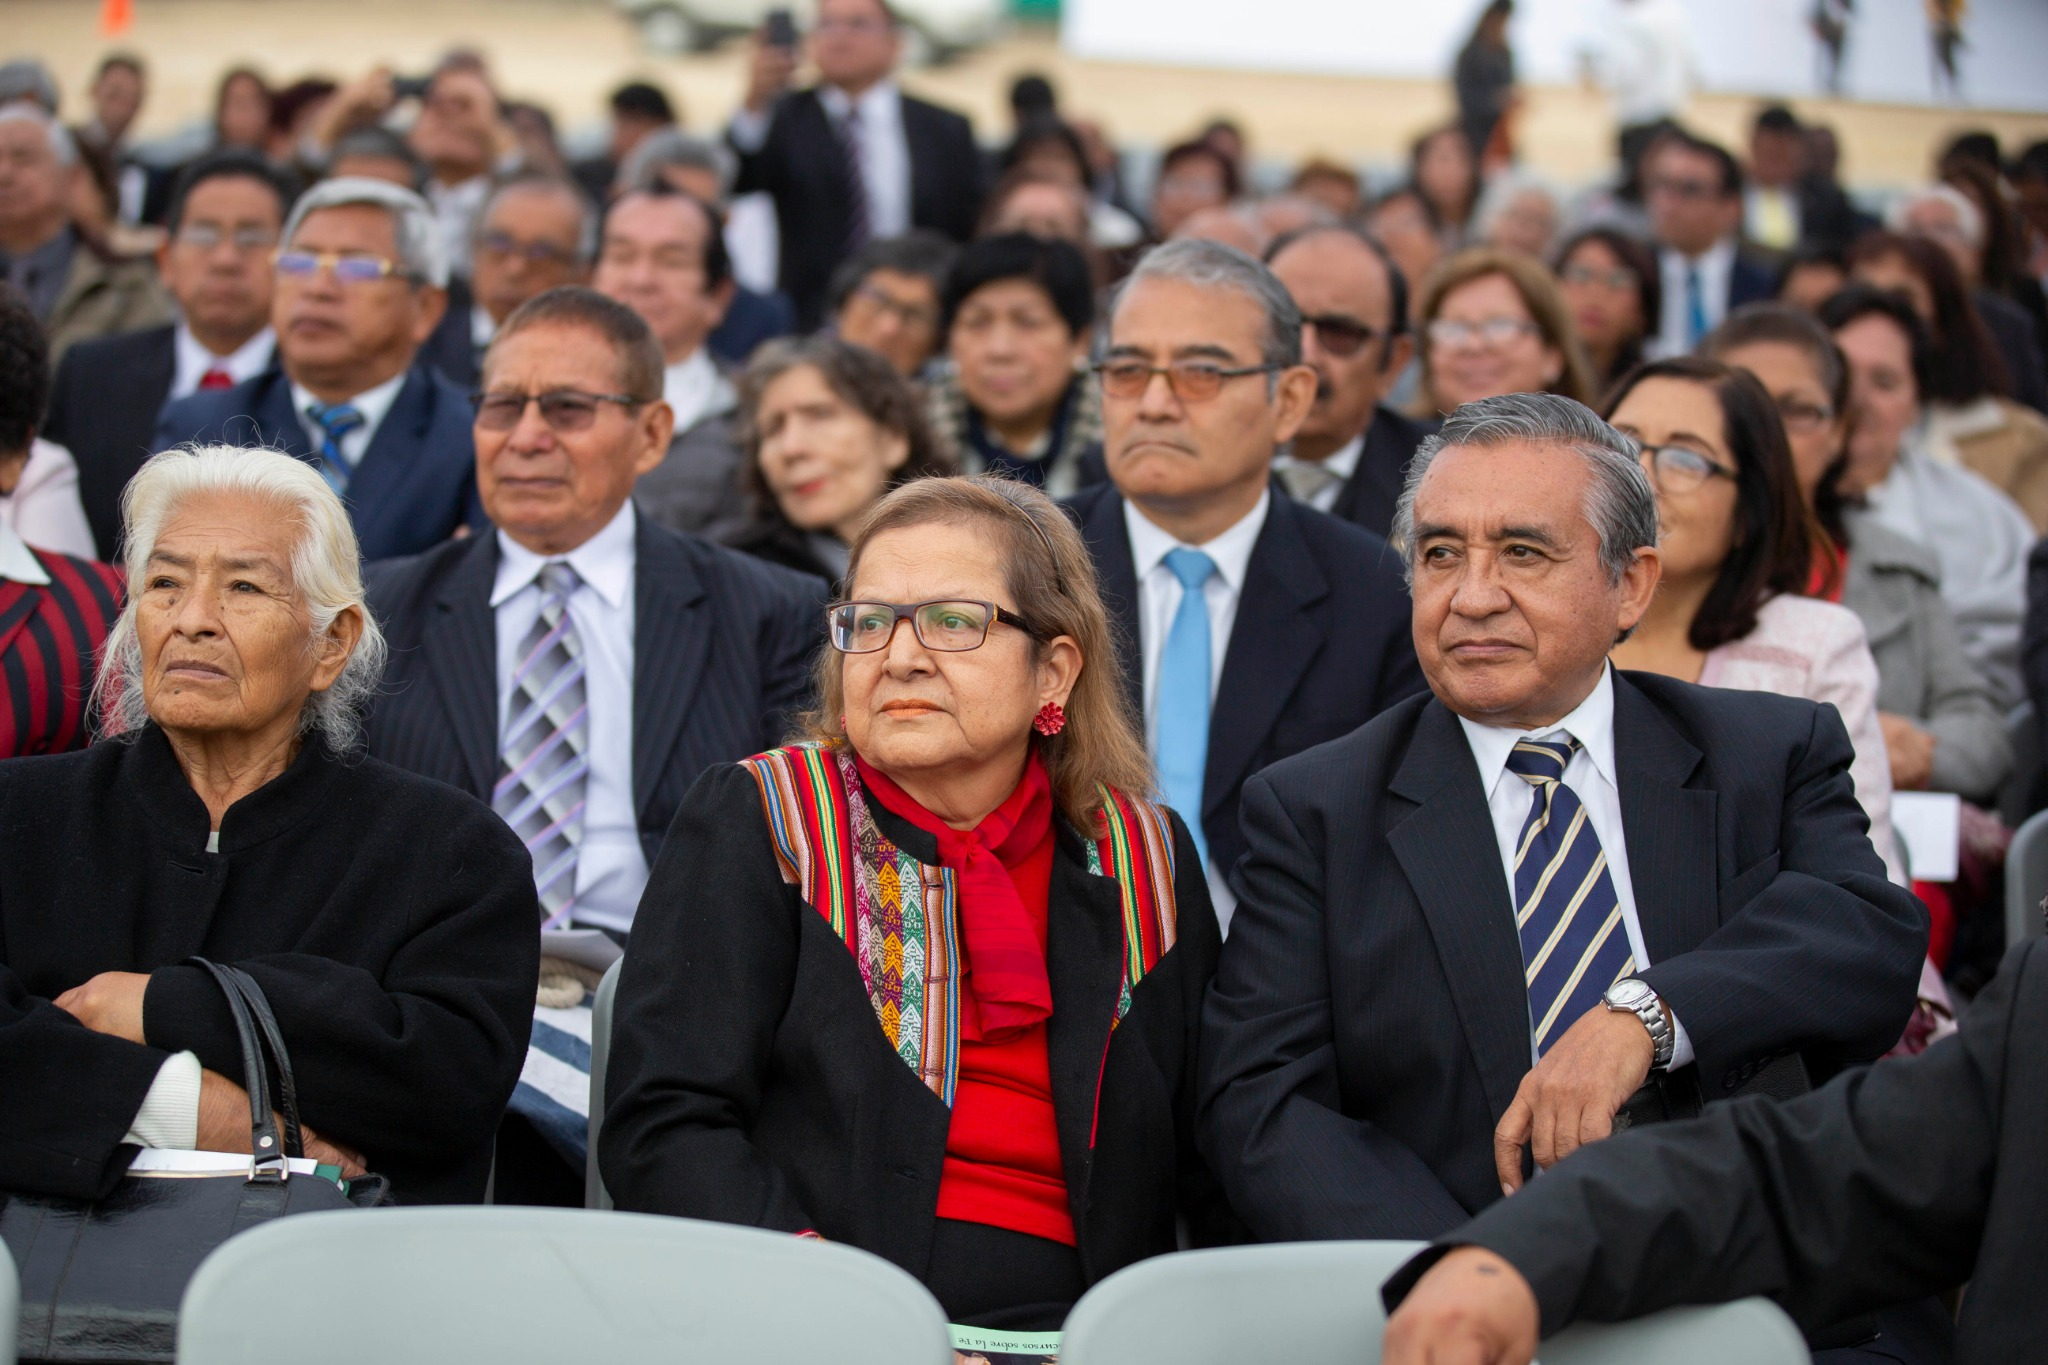 Latter-day Saints in Lima, Peru, gather to note the start of construction on the Lima Peru Los Olivos Temple with the groundbreaking ceremony held Saturday, June 8, 2019.